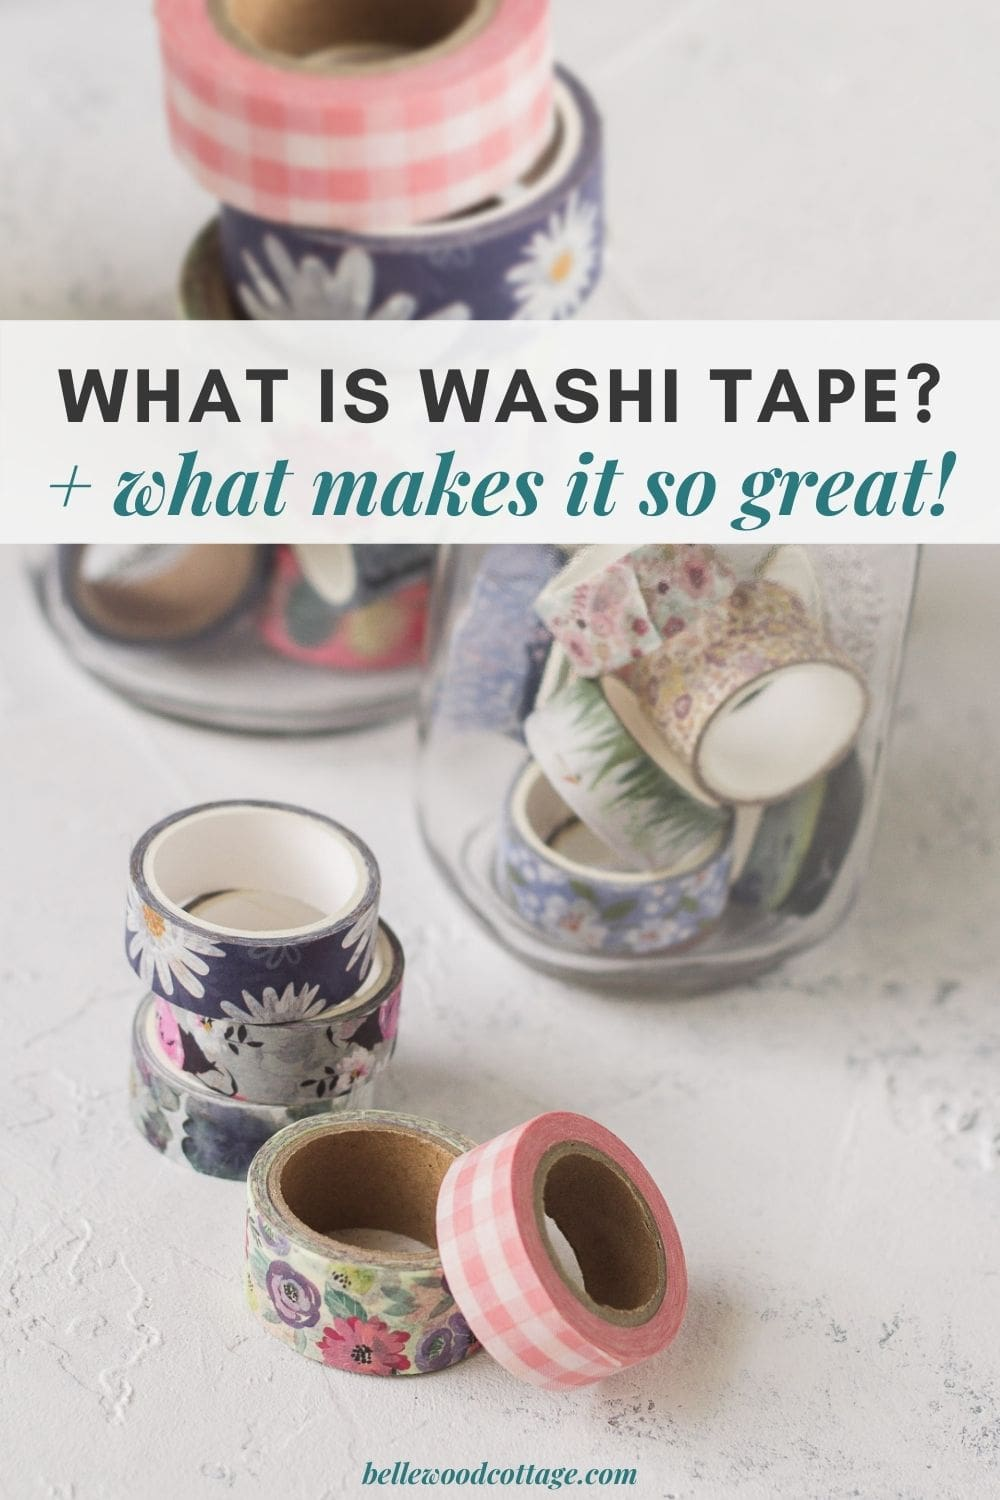 Spools of floral washi tape on a textured surface.